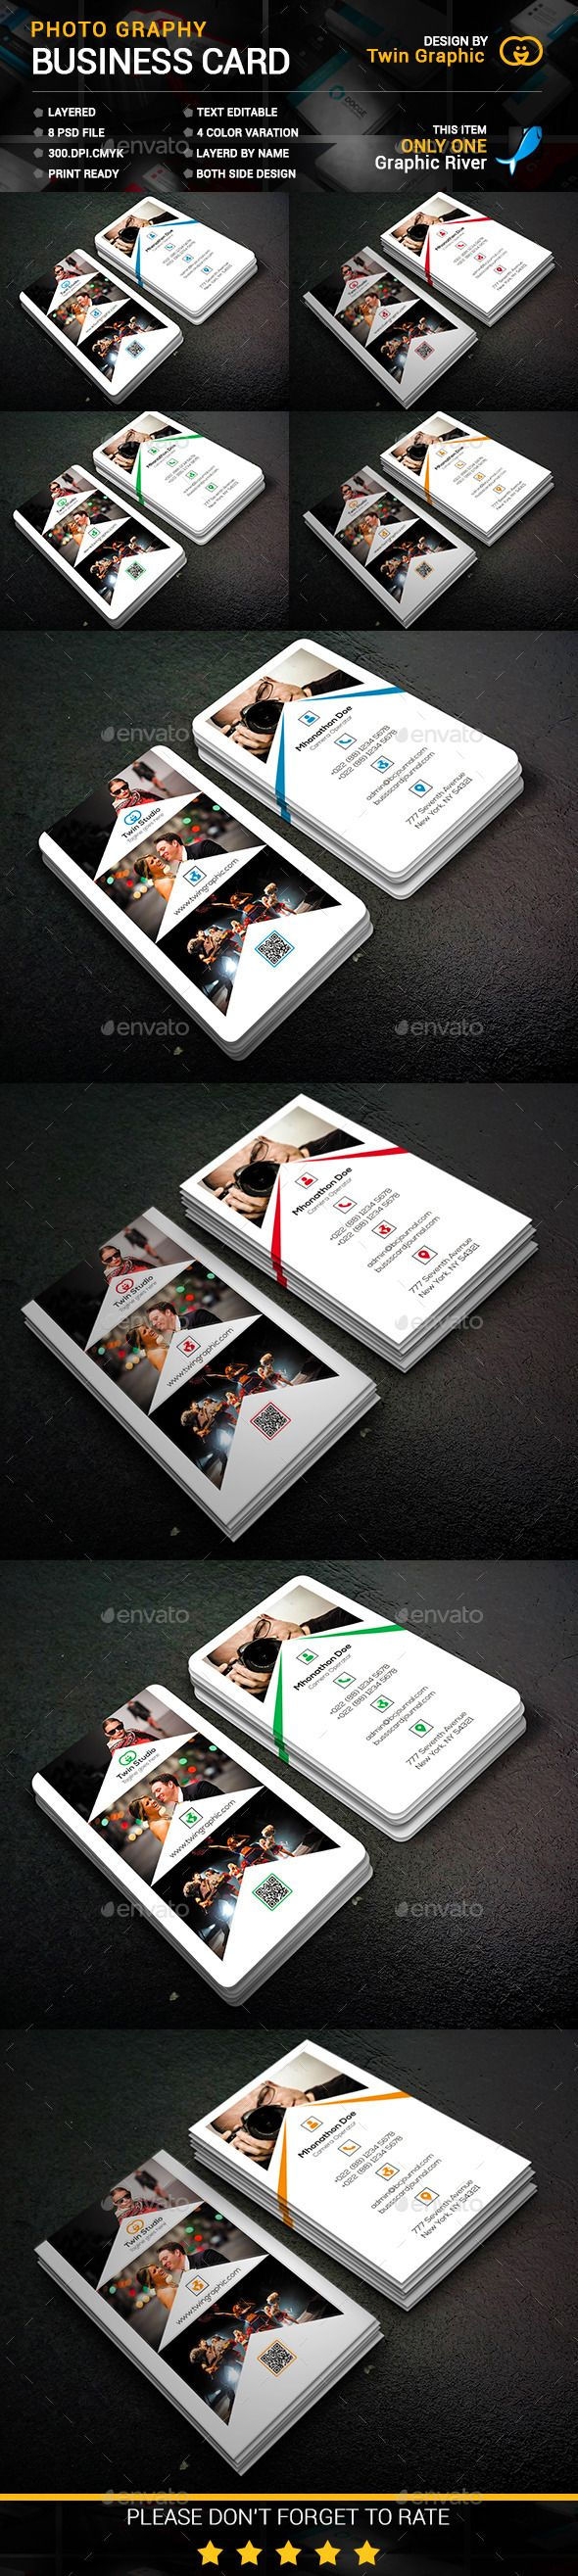 116 best business card images on pinterest visit cards print photography business card design fbccfo Images